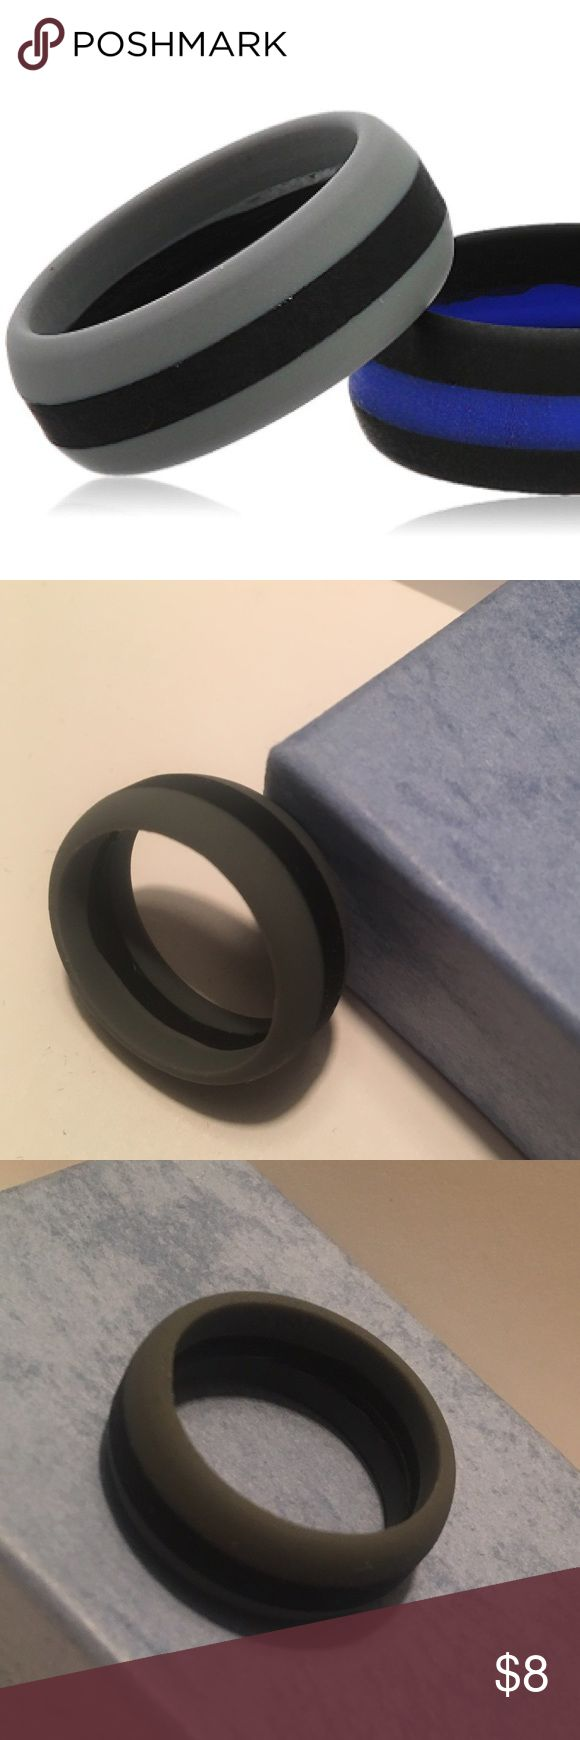 "Men's Gray/Black Silicone Wedding Ring, Size 11 Brand new, never worn black/gray striped silicone wedding ring. Metal rings can get in the way of exercise or become damaged, or worse yet crush fingers. Weightlifting and Crossfit exercises can make the ring dig into your finger. With this silicone ring there is no more need to take off your wedding band for sports or other physical activities whether at work or during play. There is also a safety ""break away"" that occurs around 40lbs. NAK…"